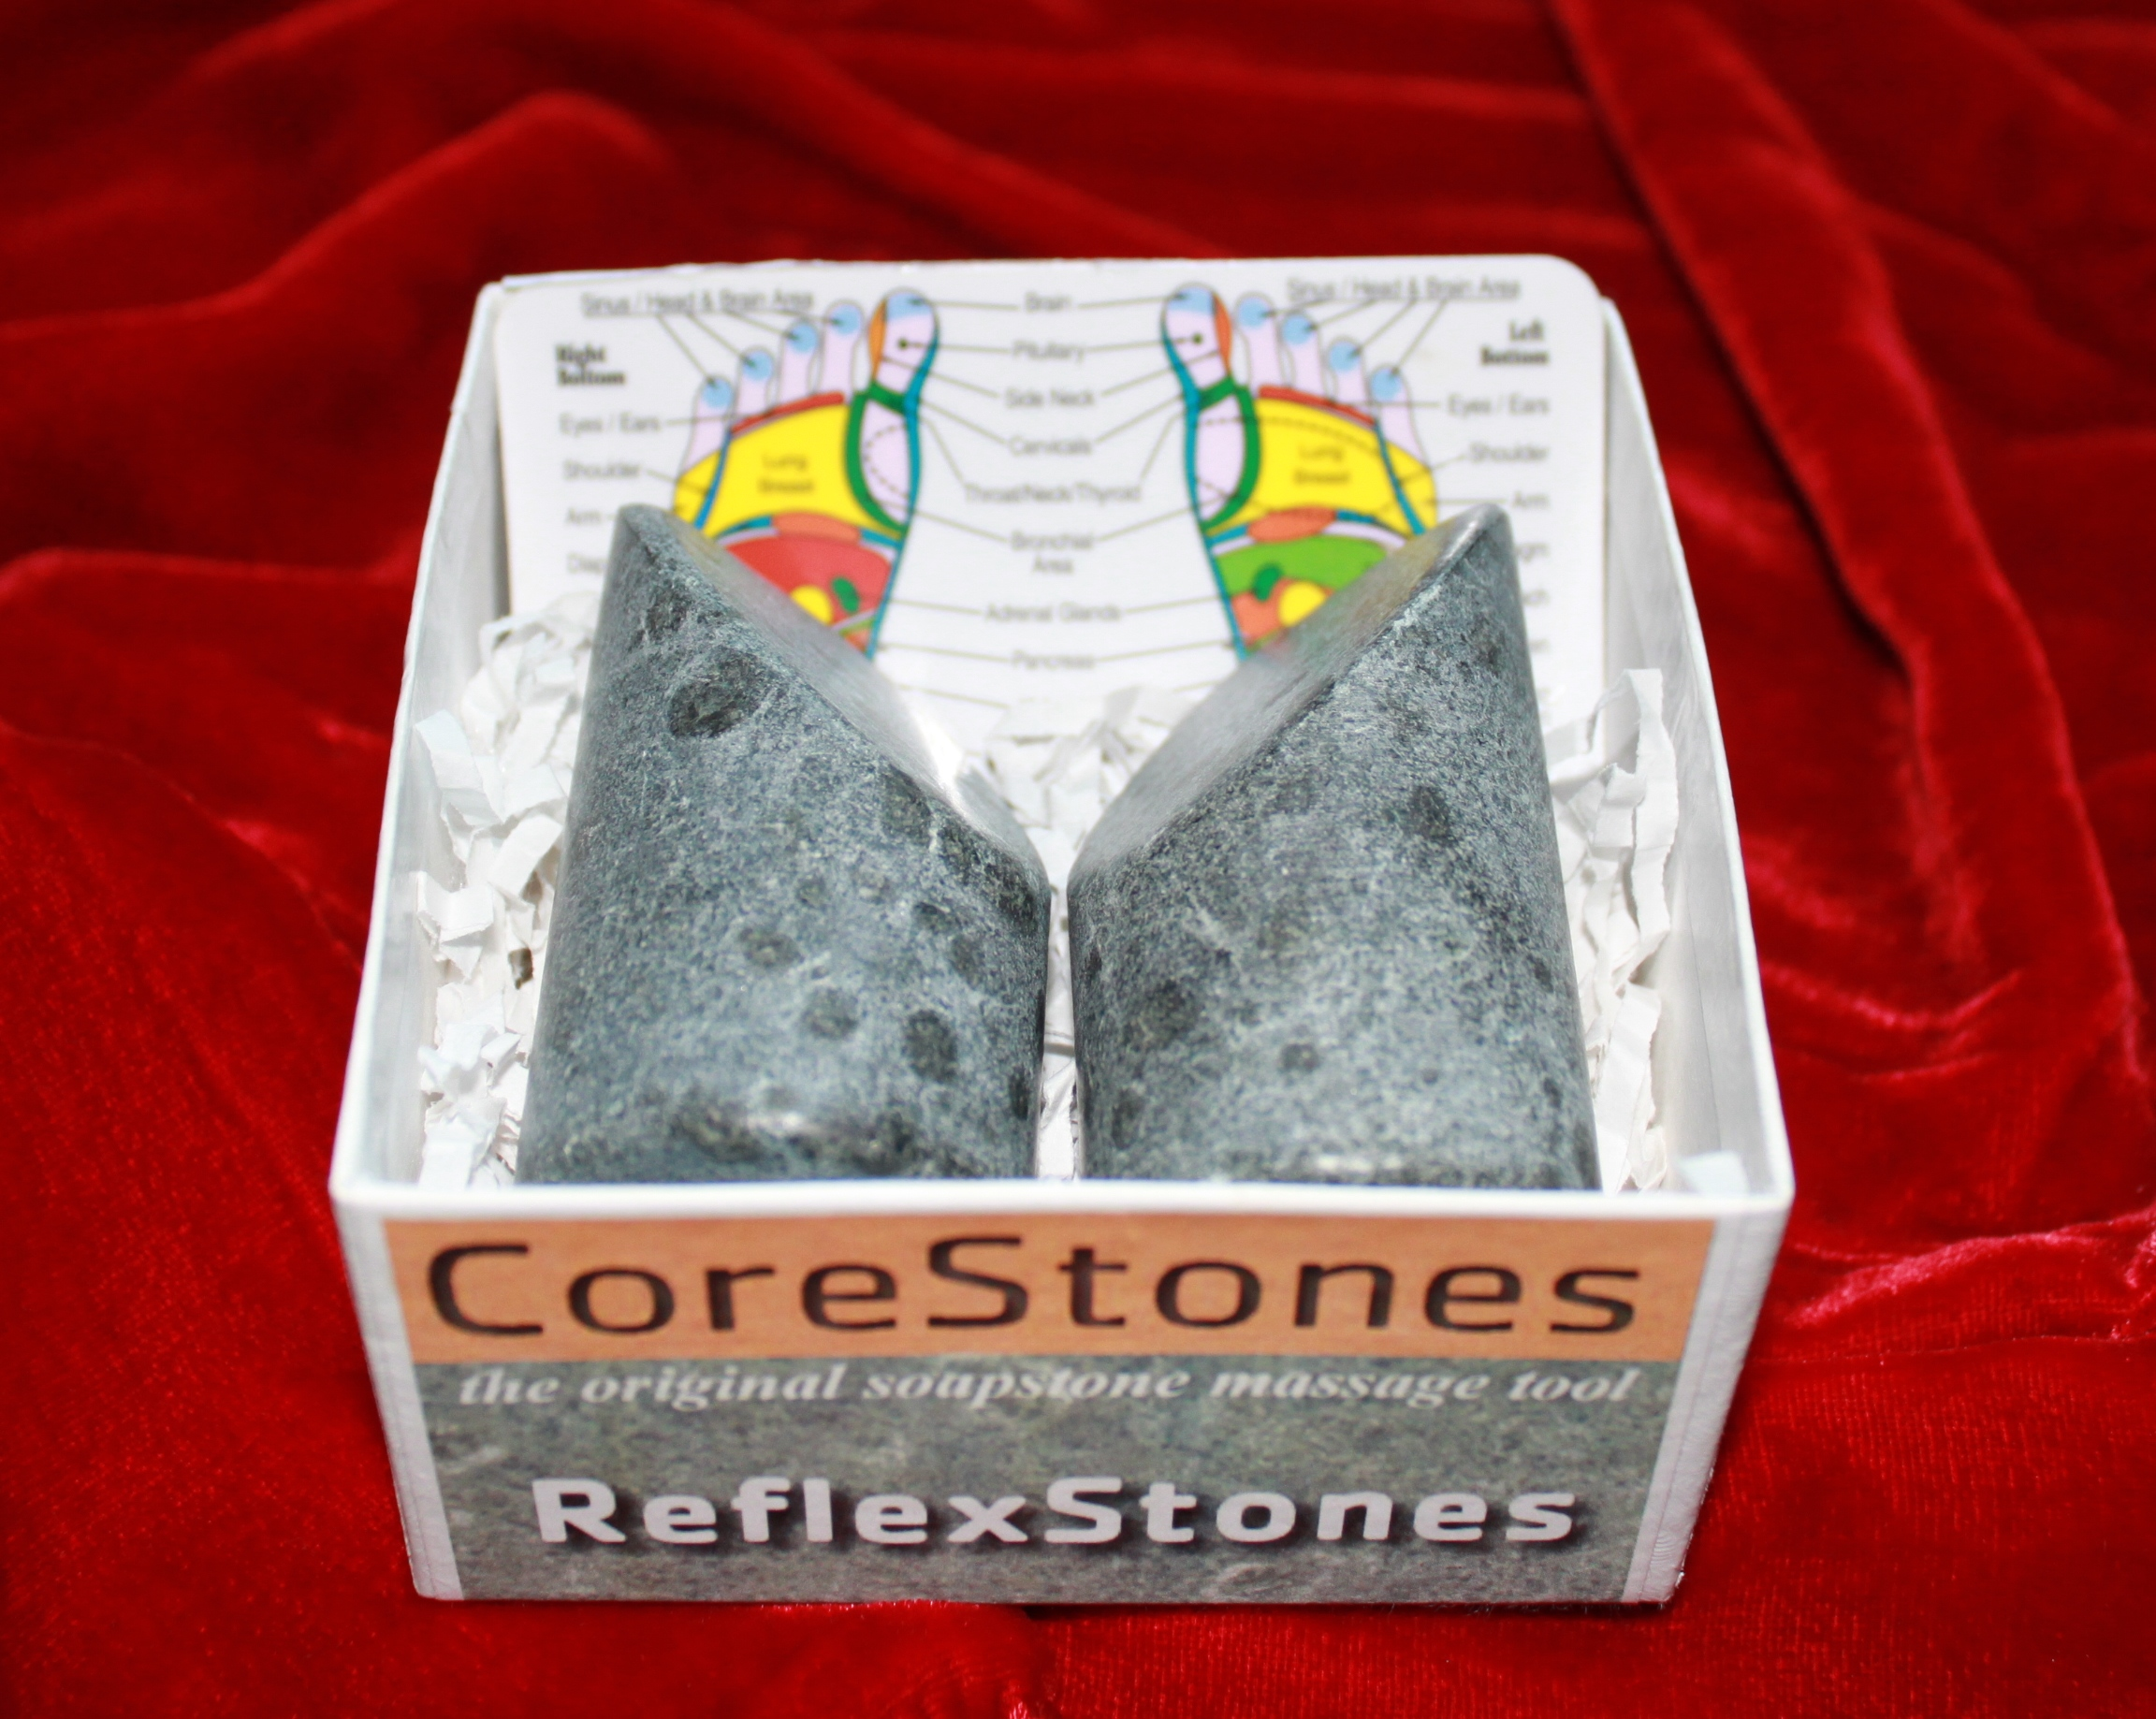 CoreStones Introduces New Stone-Massage Products for Home Use, MASSAGE Magazine